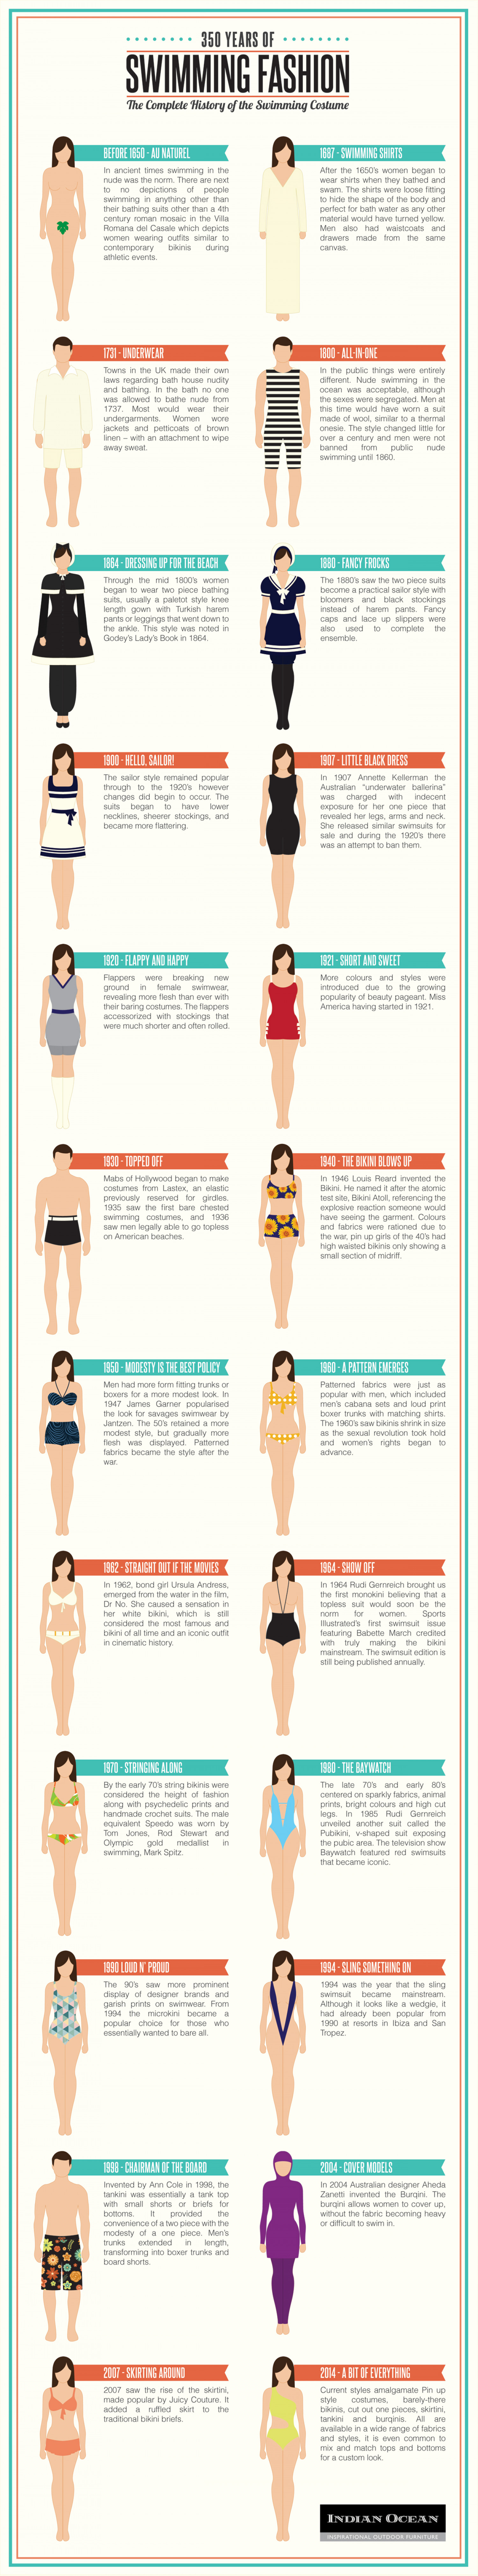 The Complete History of The Swimming Costume Infographic